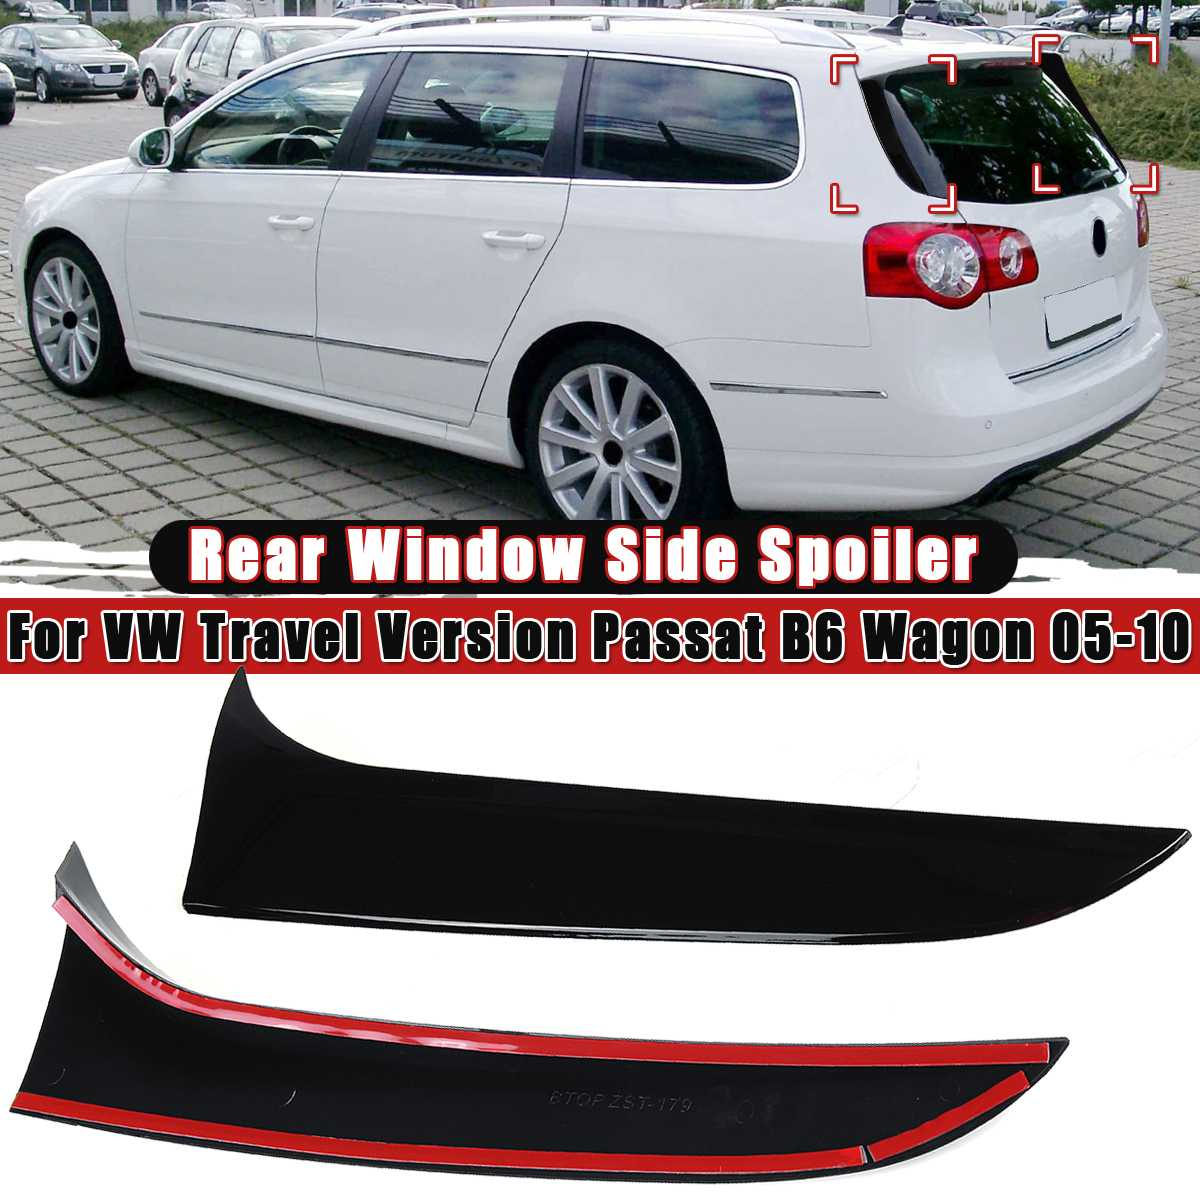 Boot Spoiler Wing Fits VW Eos Pre Facelift 2006-2010